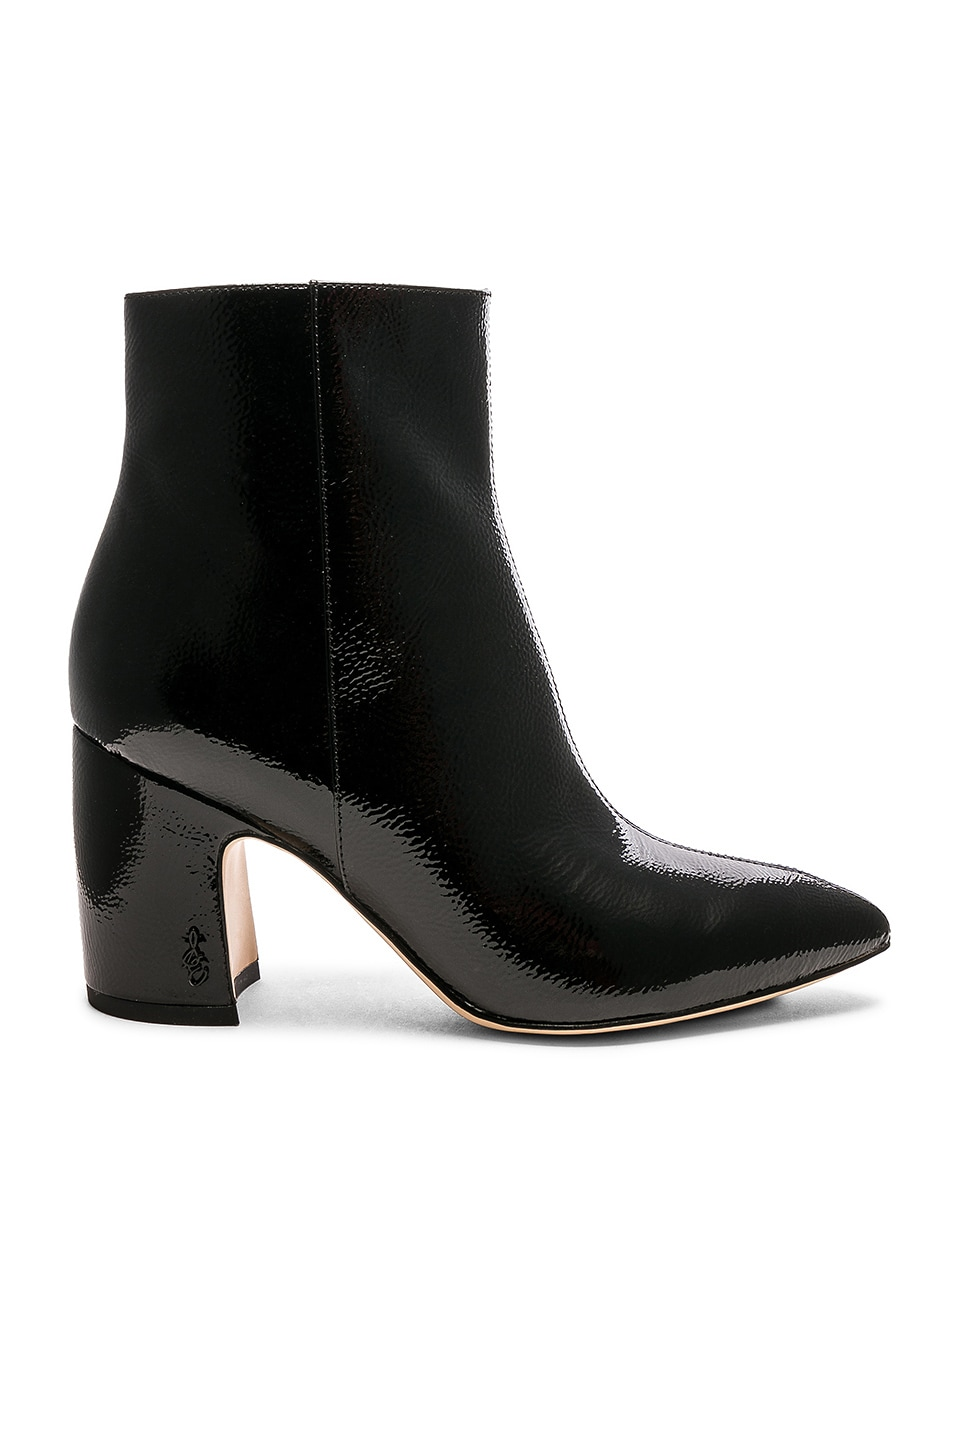 Sam Edelman Hilty Bootie in Black